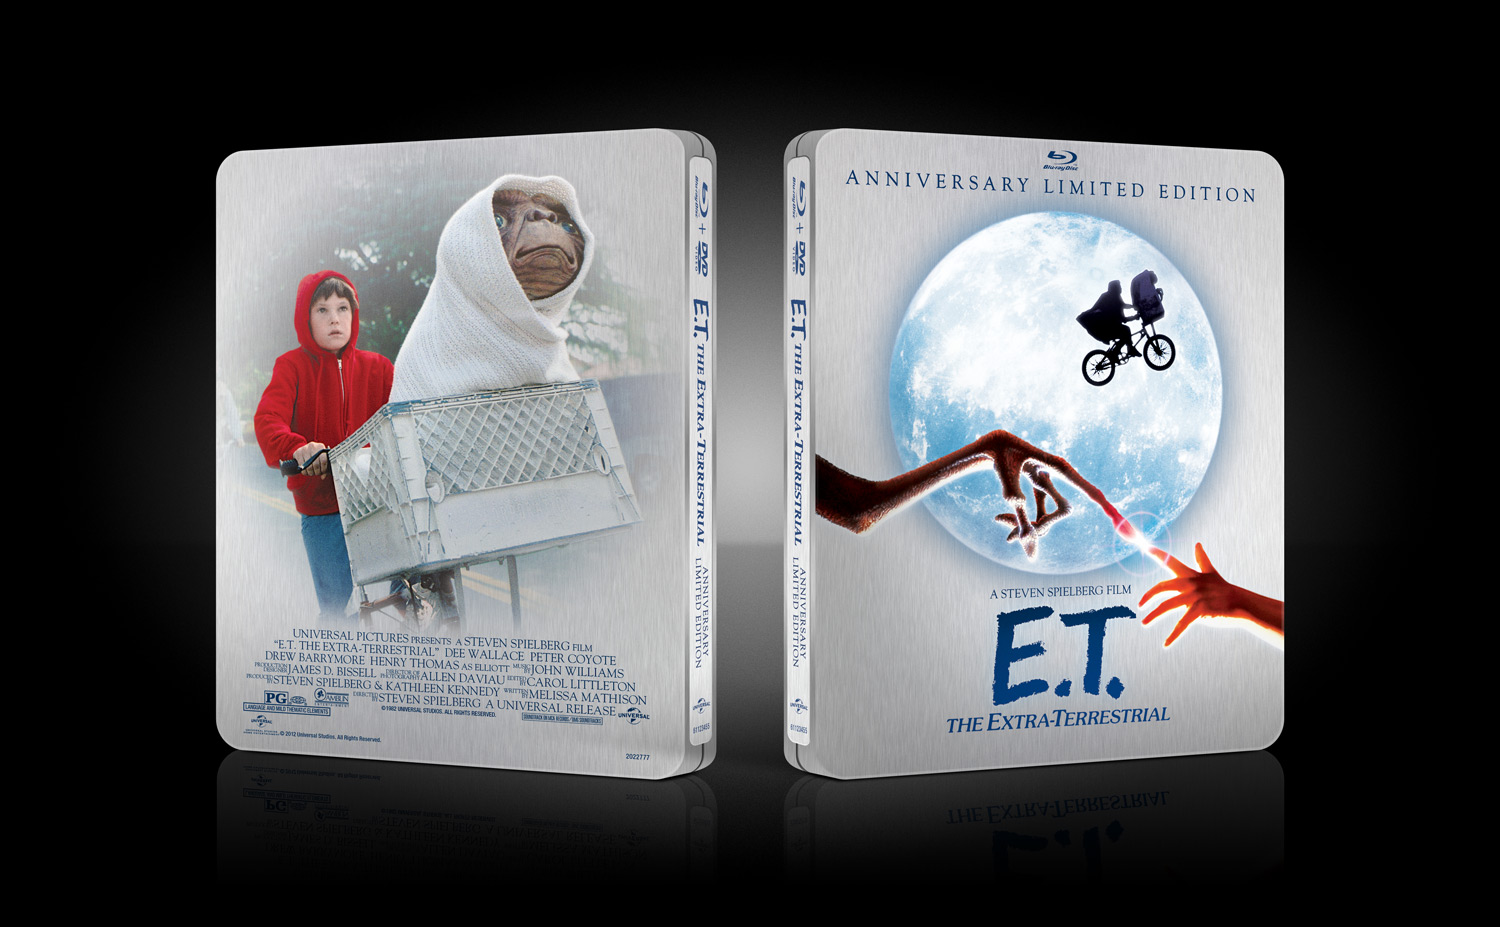 ET_30thAnniversary_Collection_03.jpg